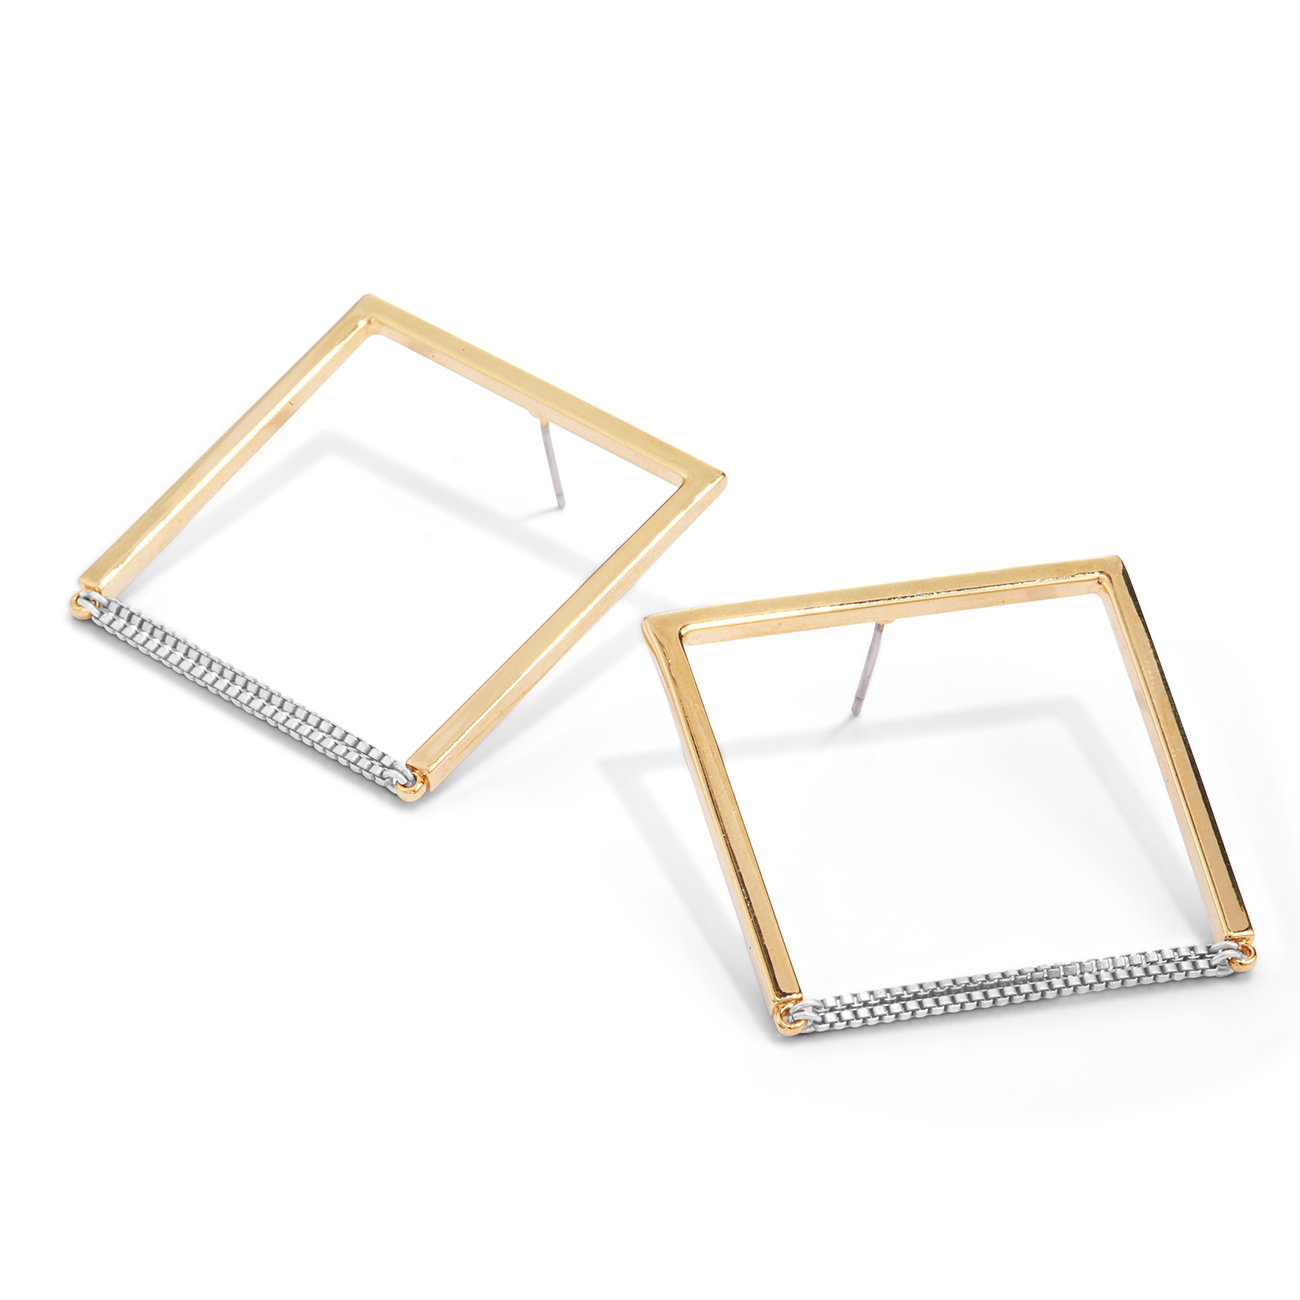 Gold and silver square shaped Nora hoop Earrings by Jenny Bird